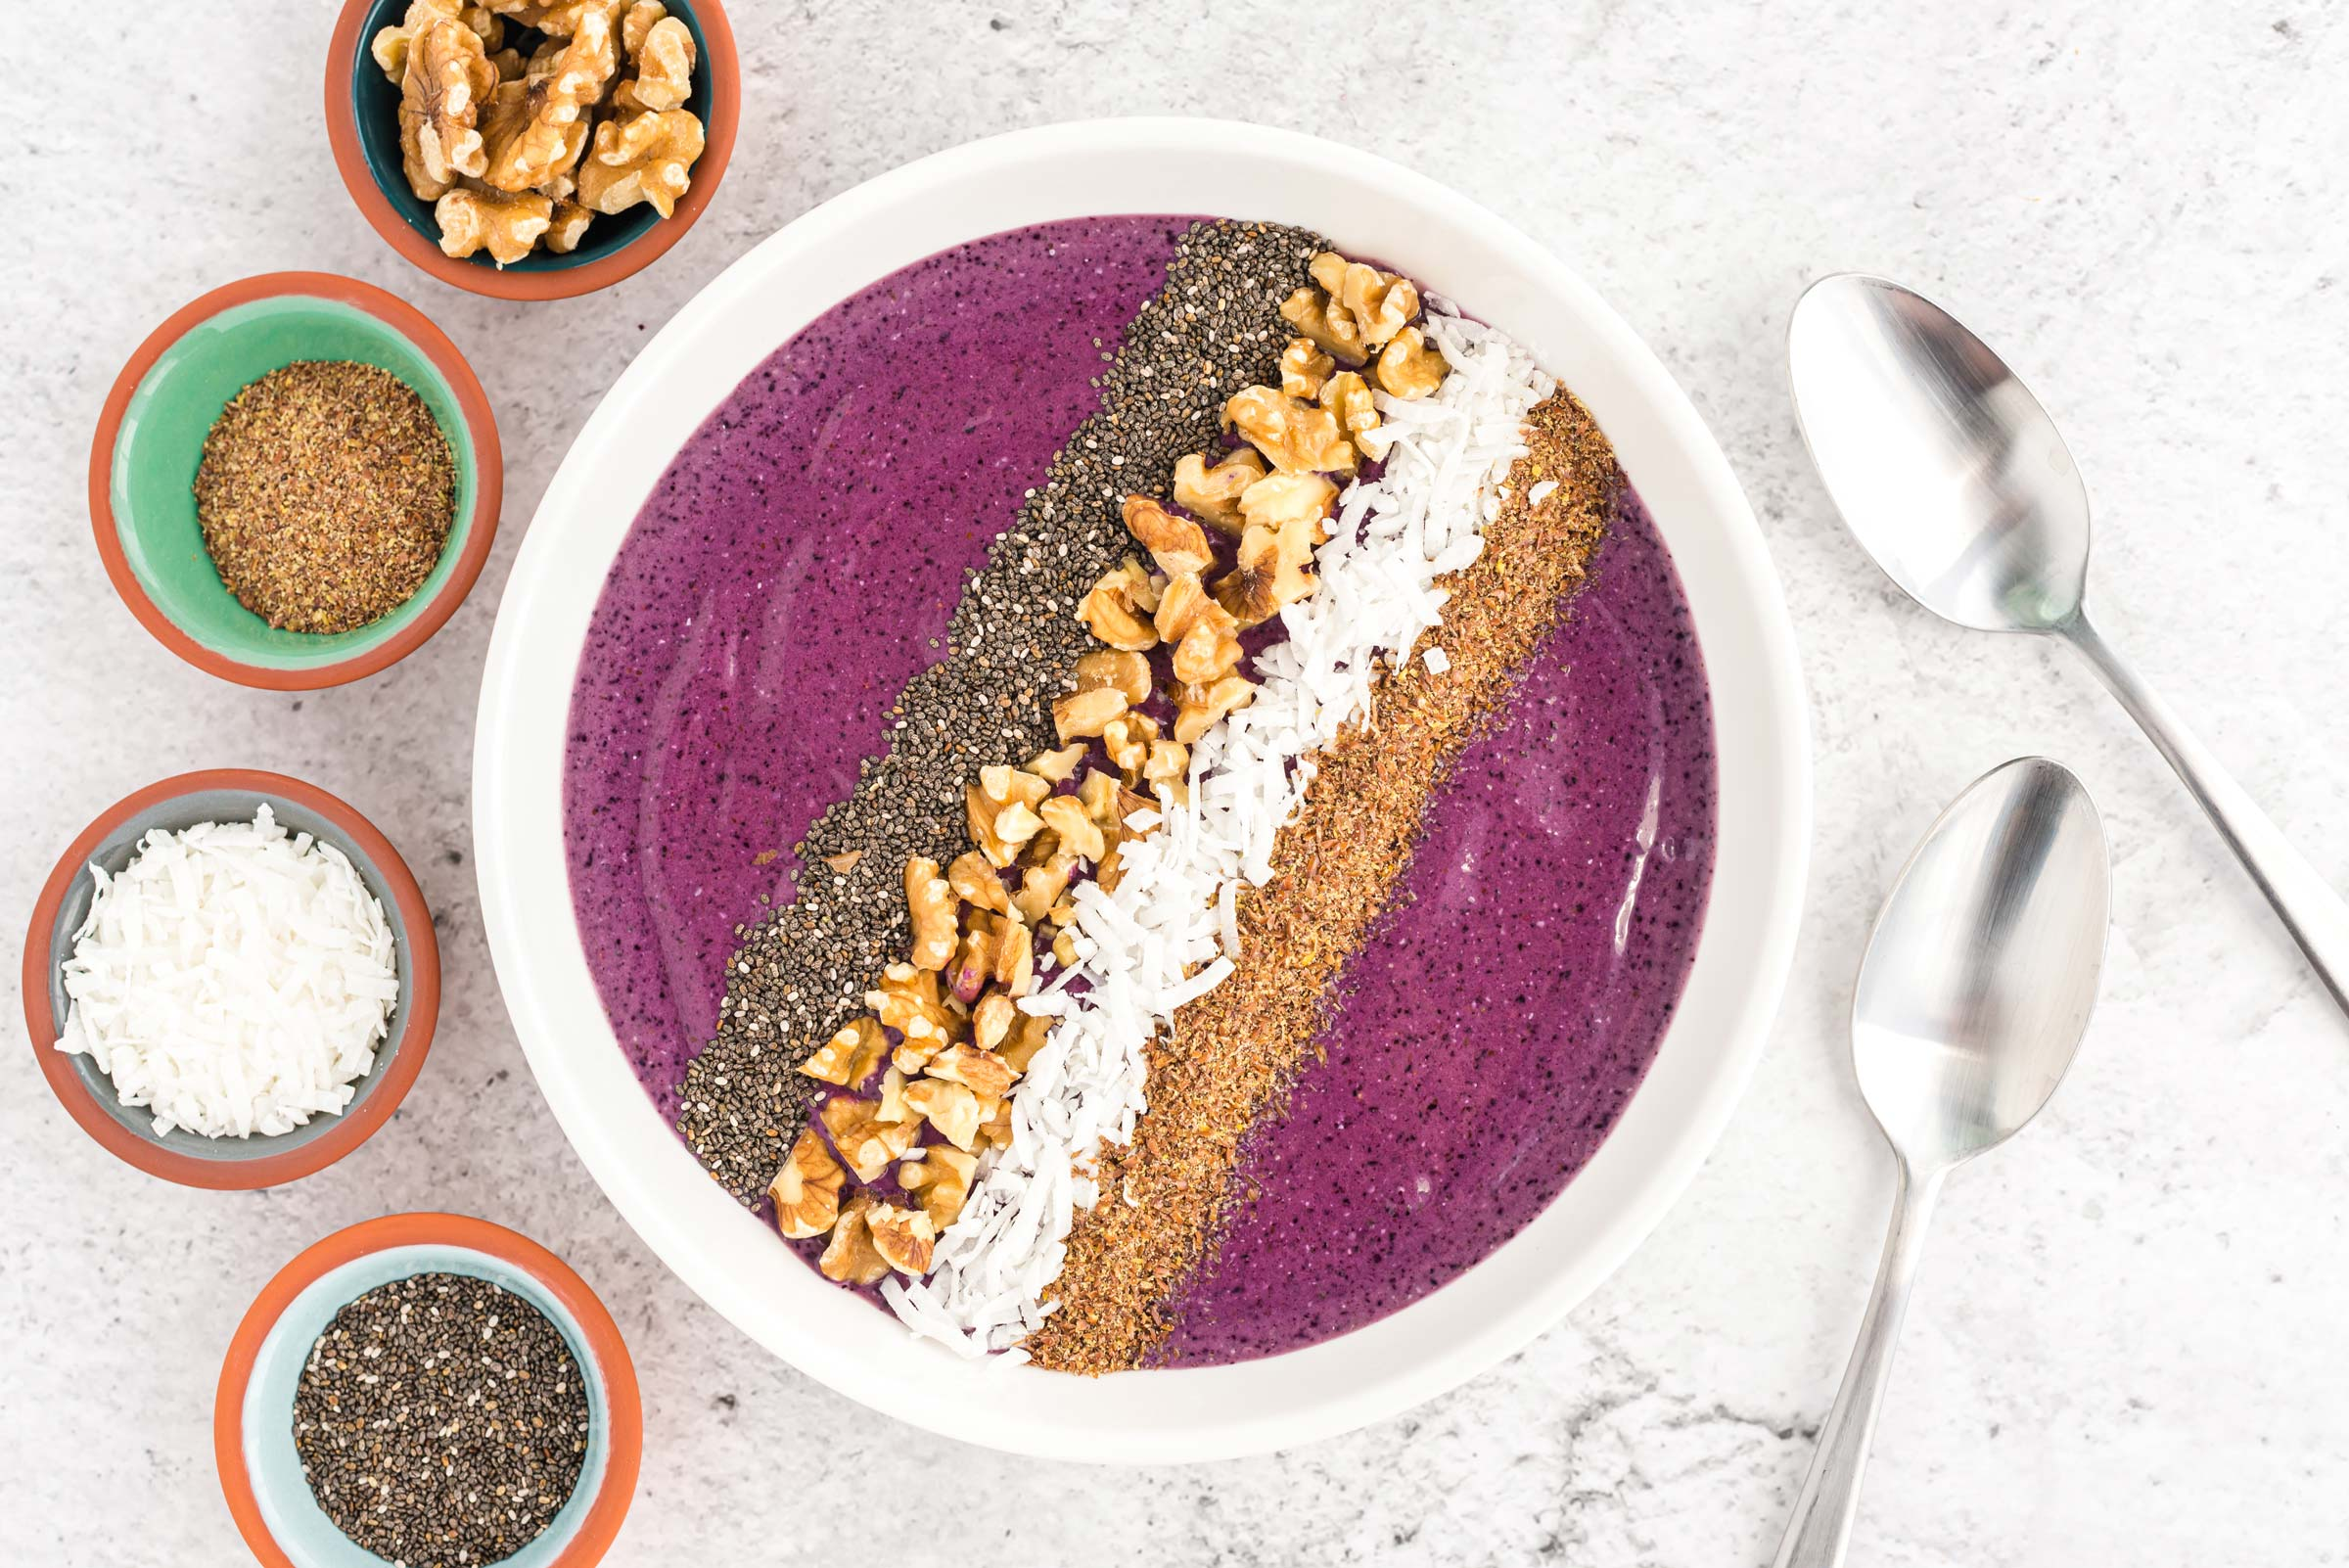 berry delicious omega 3 smoothie bowl